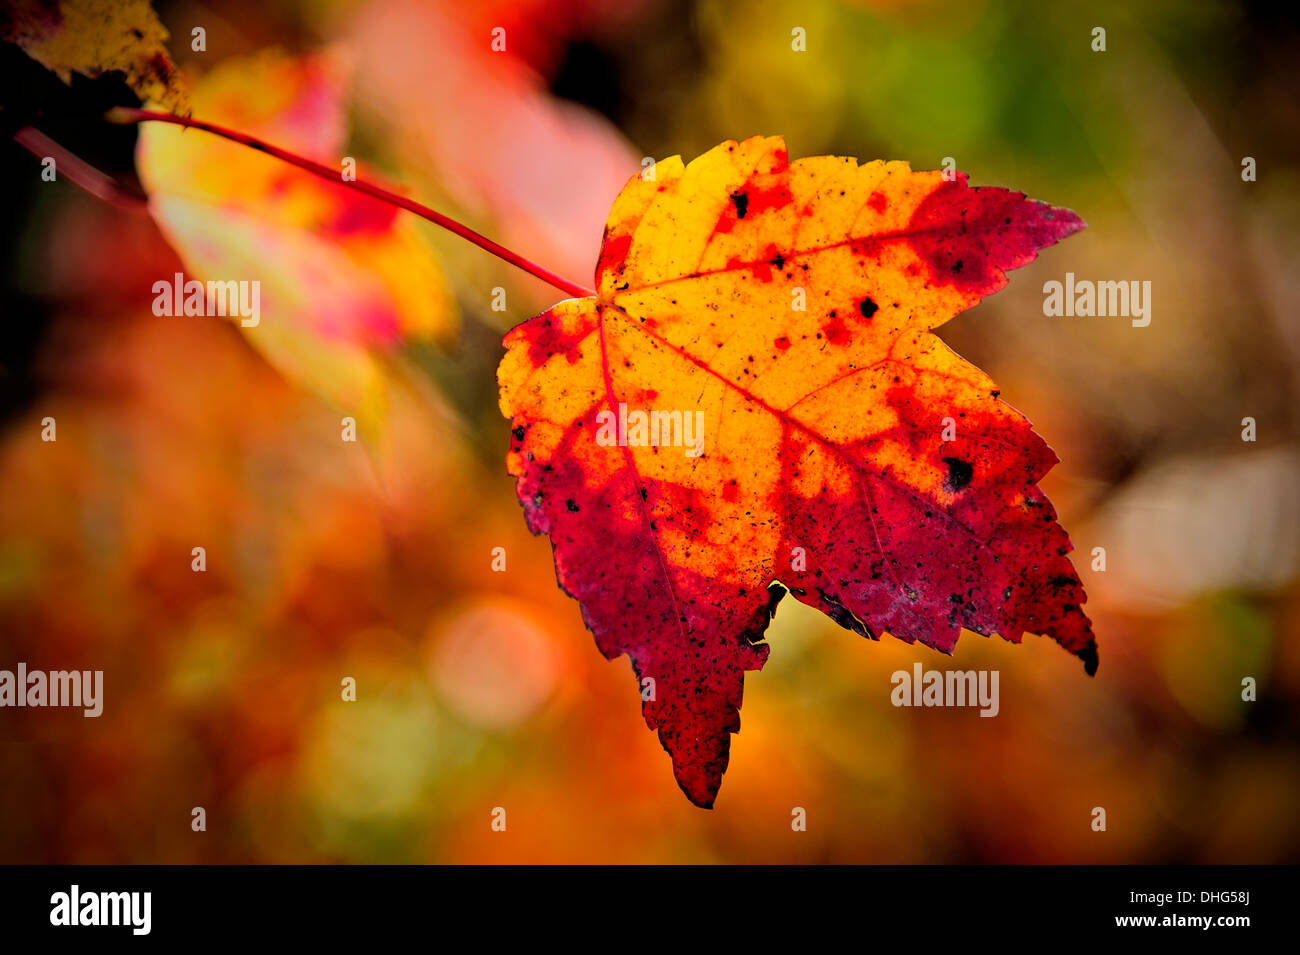 A maple leaf changing color to the bright reds and yellows of fall. Stock Photo